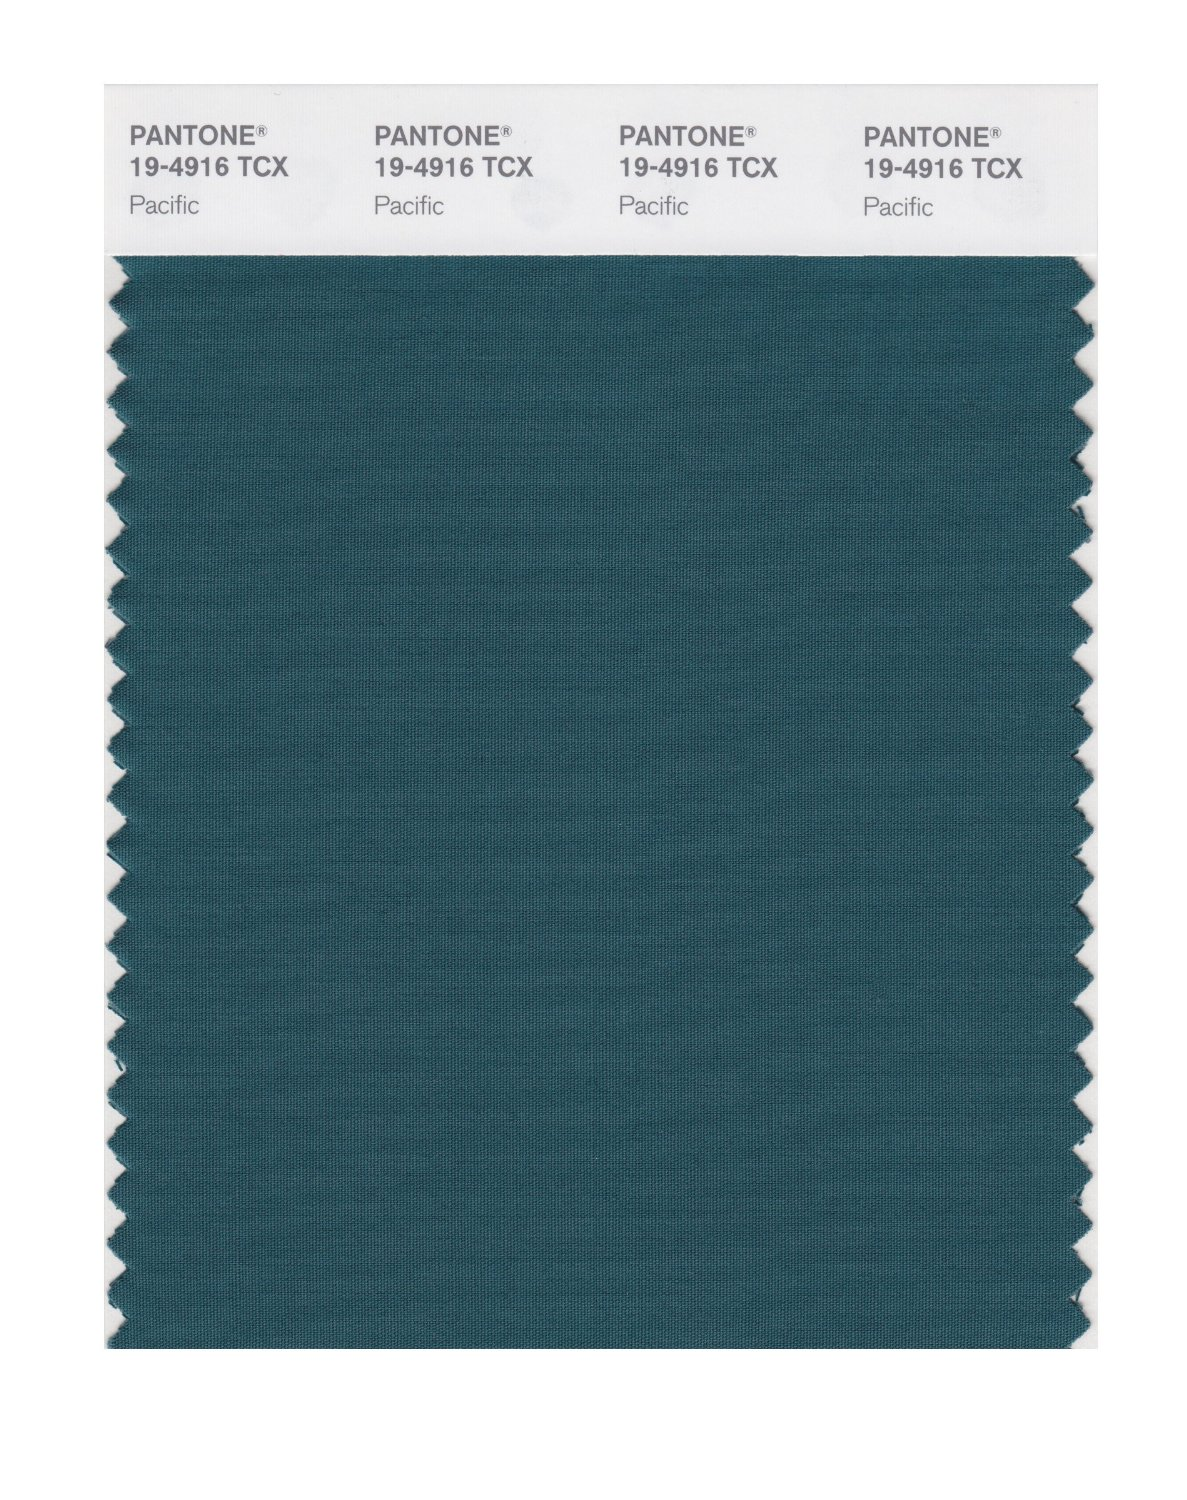 Pantone Smart Swatch 19-4916 Pacific